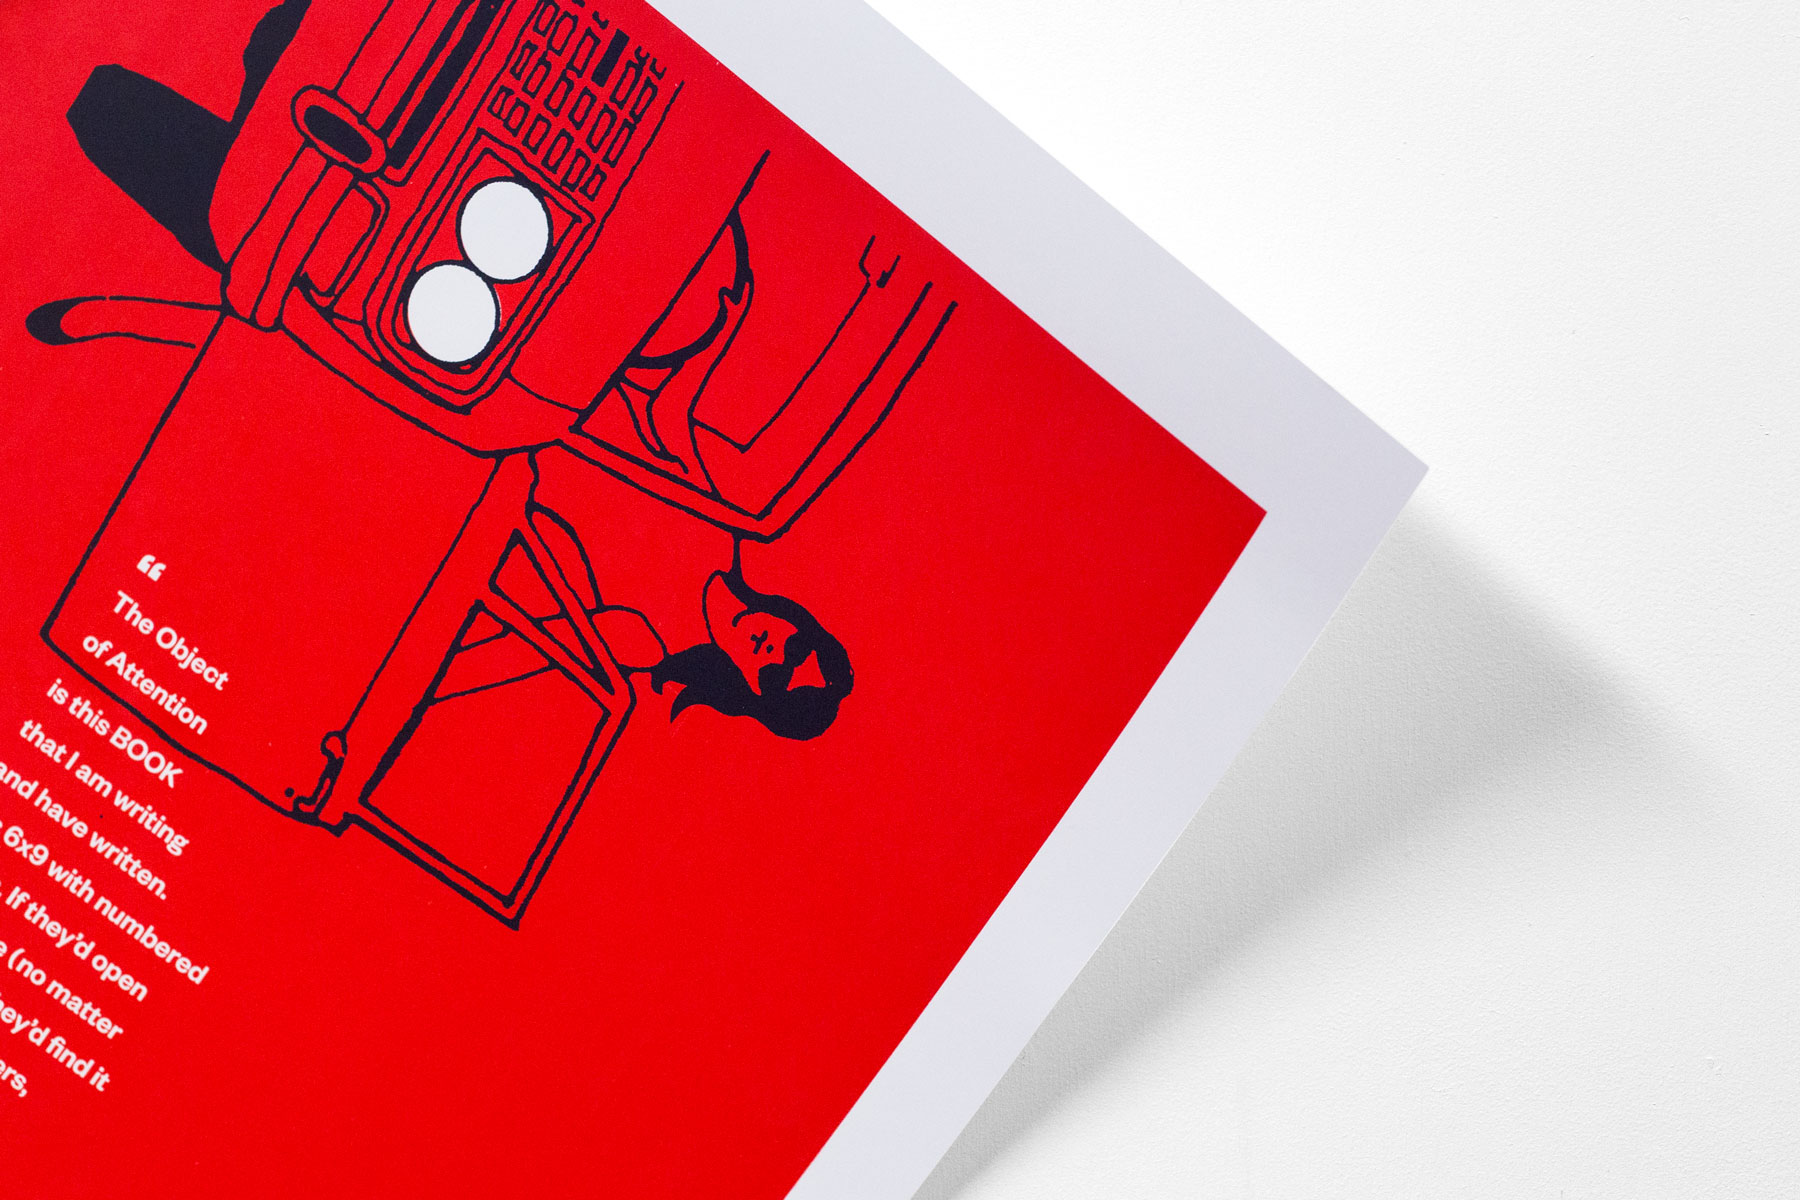 Limited edition screen printed poster